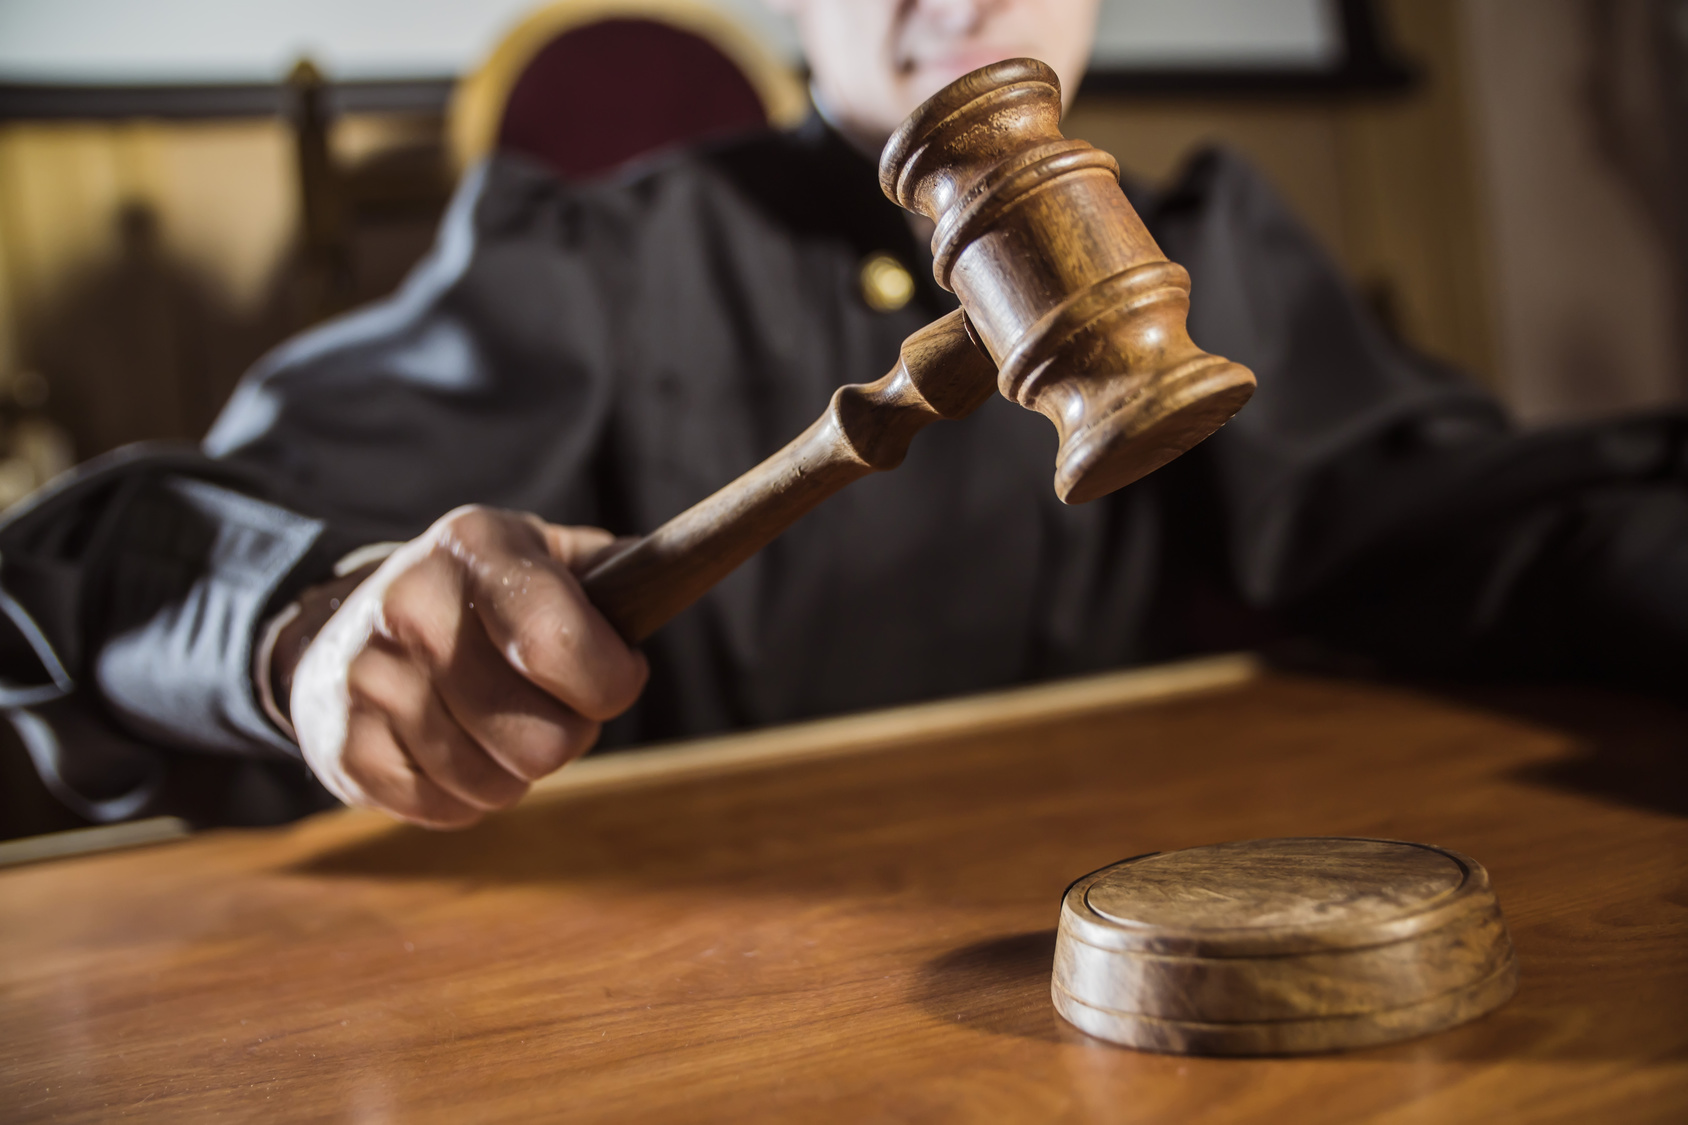 judge with gavel presiding over court case